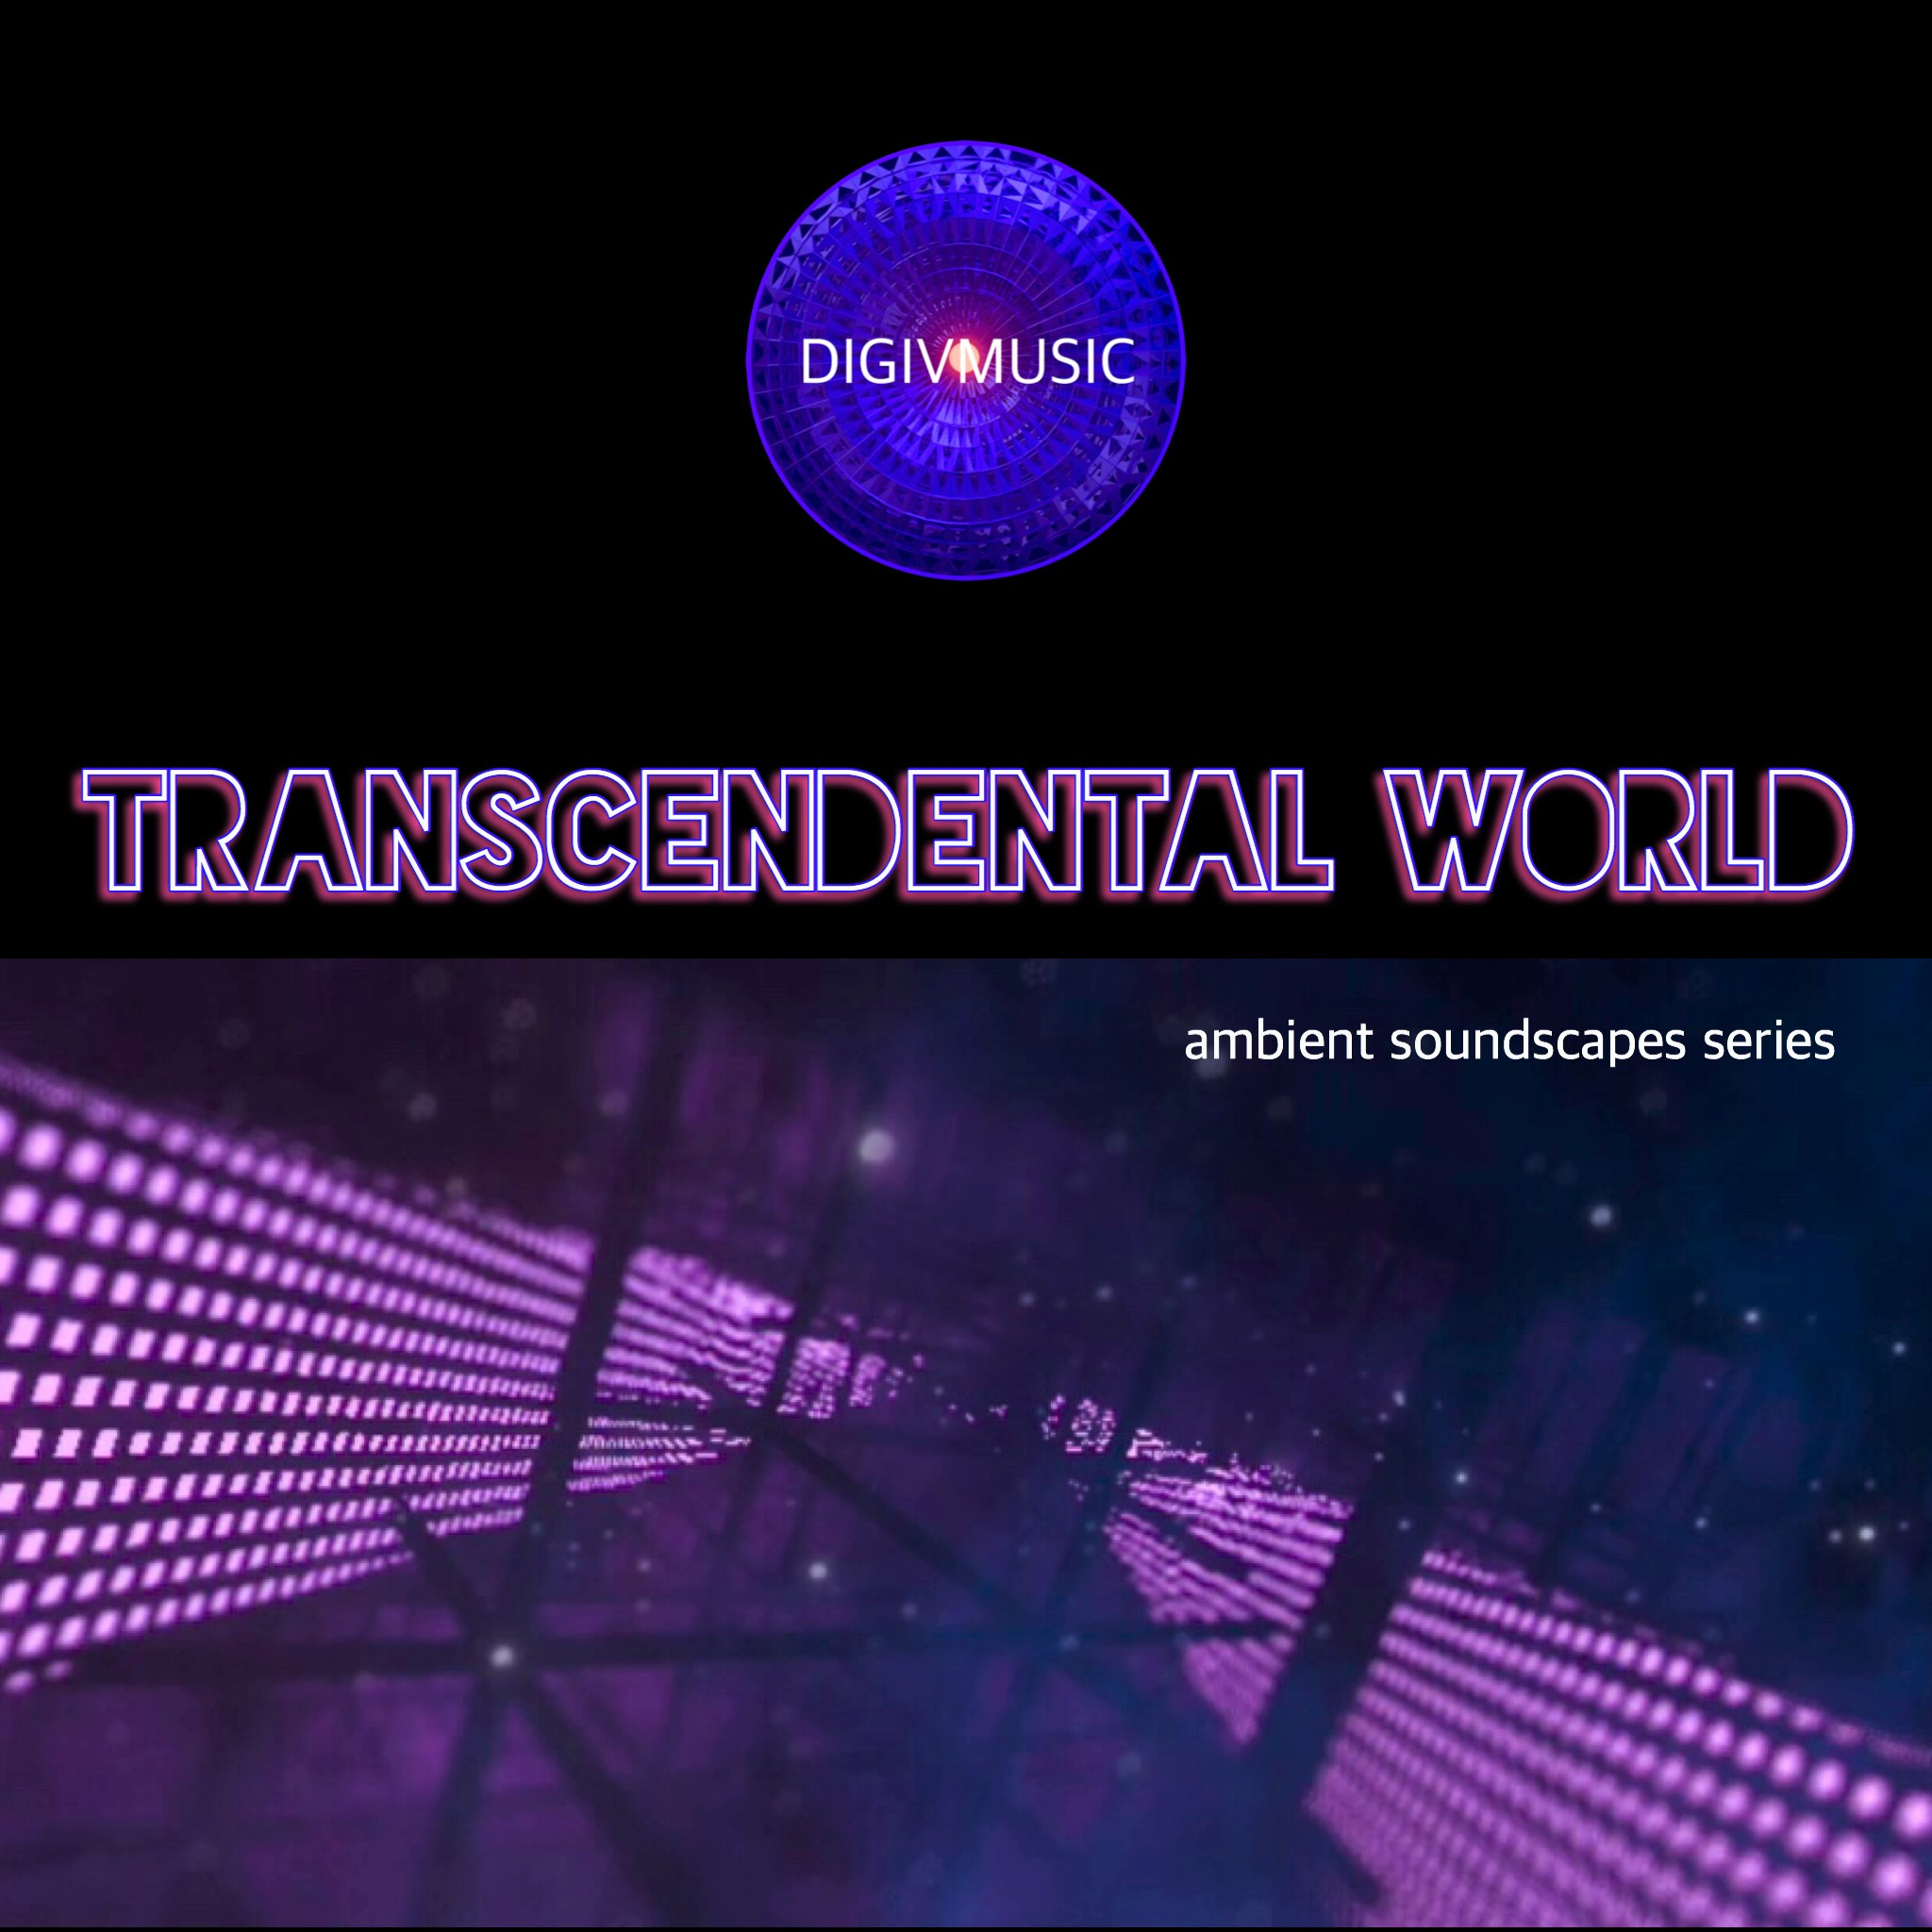 Space ambient techo Transcendental World by DIGIVMUSIC